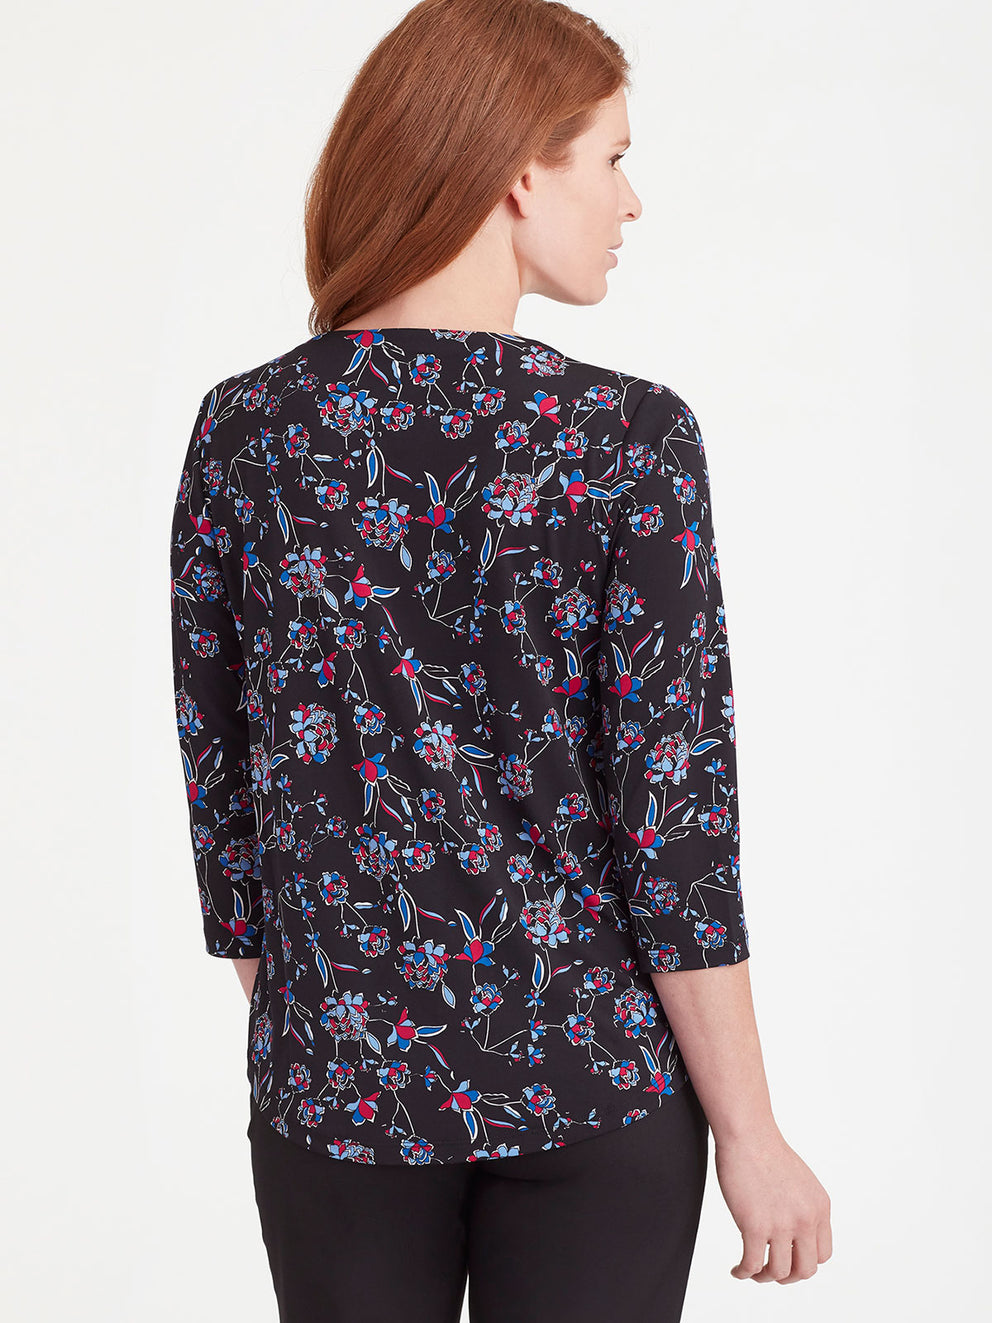 The Jones New York Keyhole Neckline Top in color Blue Floral - Image Position 3